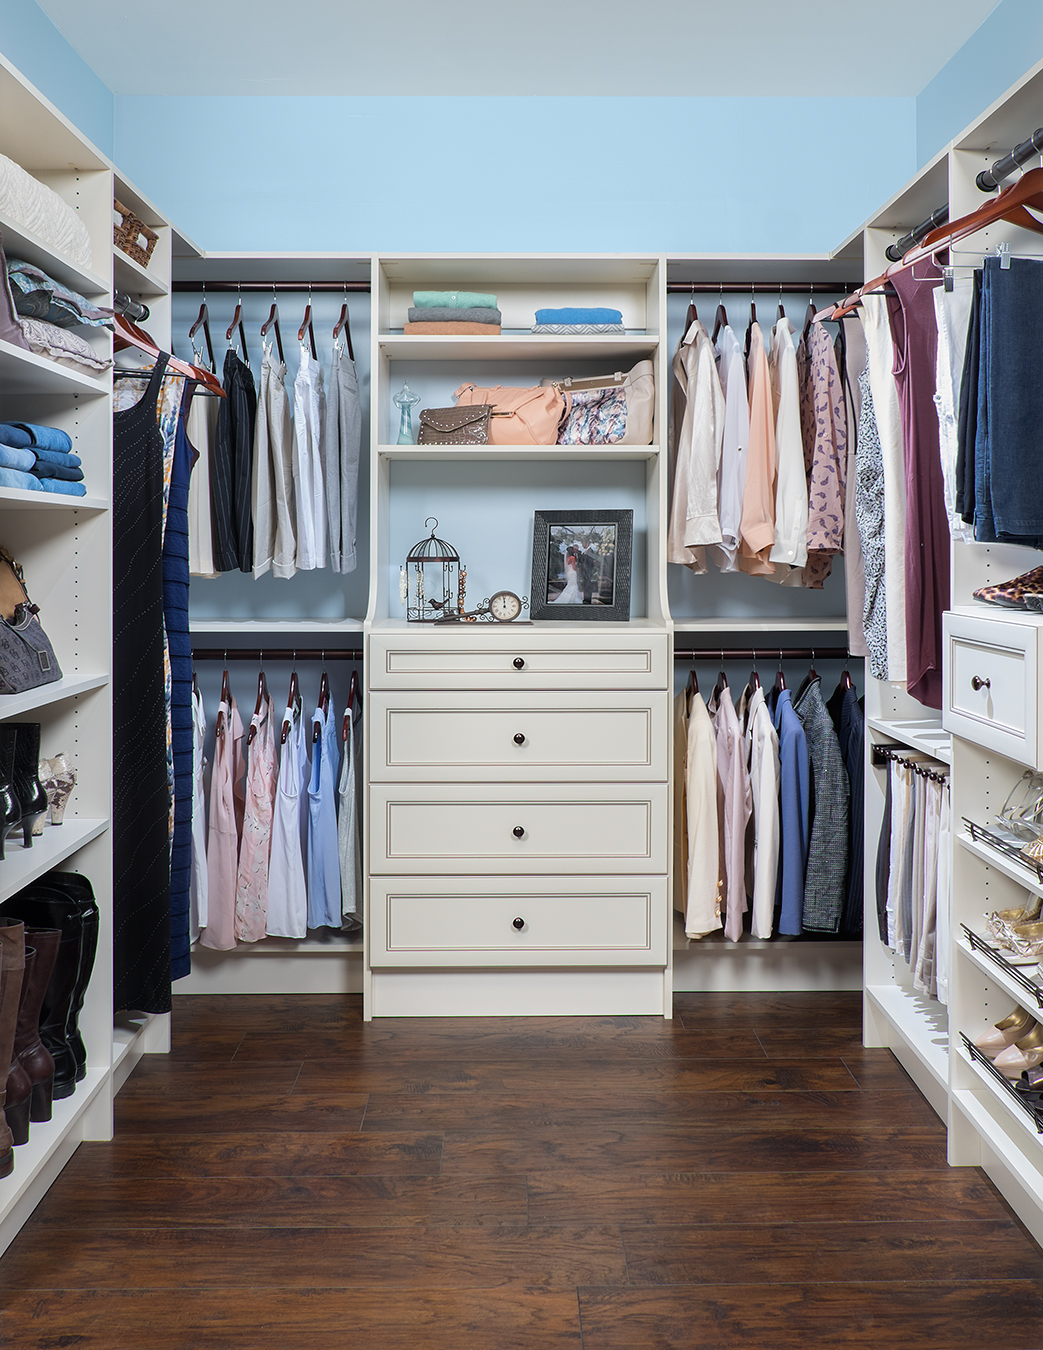 Custom Closet Designs And Storage Solutions By Desert Sky Doors And ...